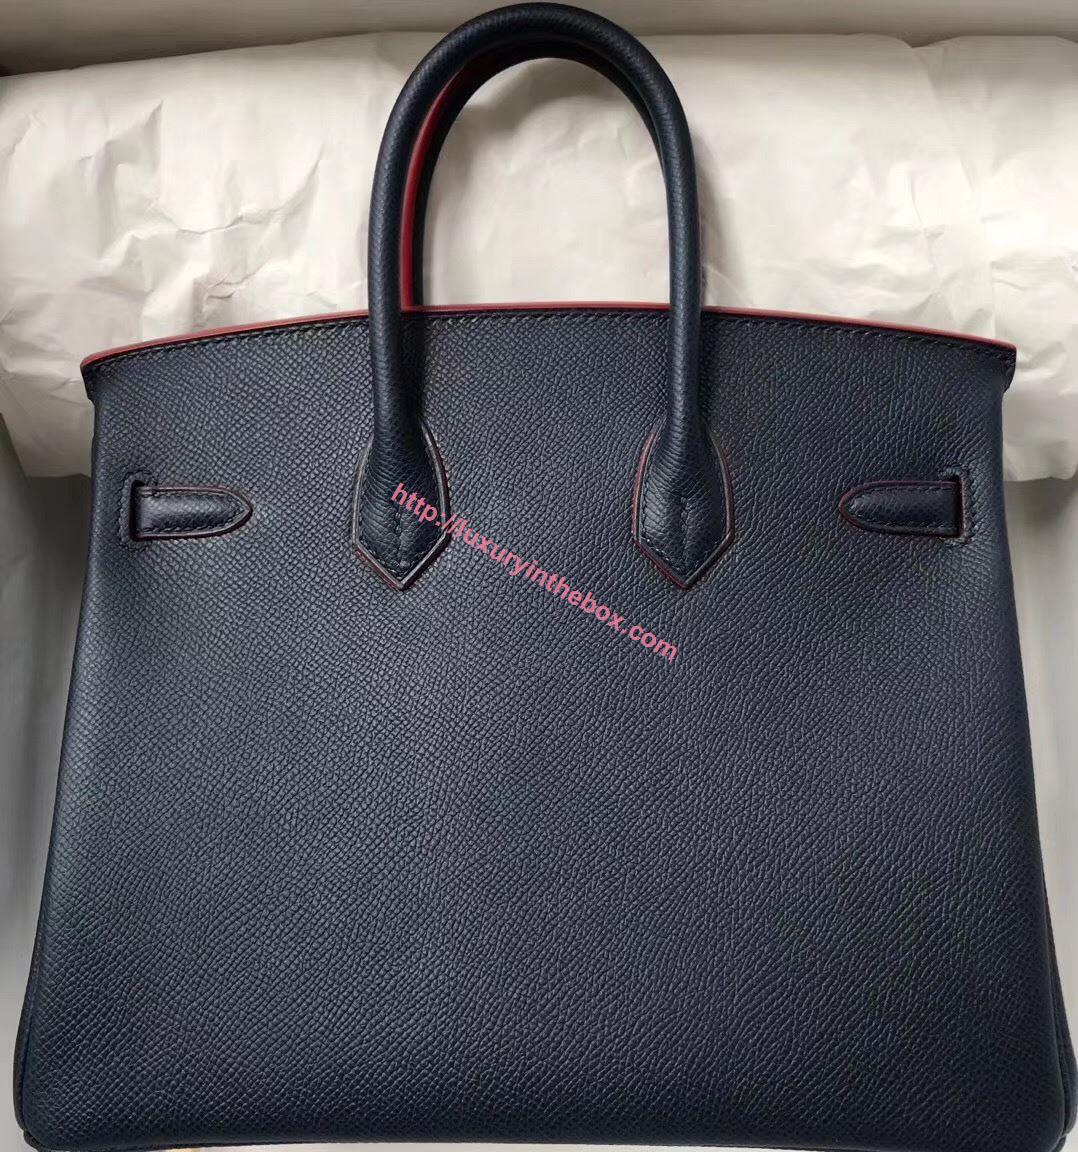 Picture of Hermes 25cm Epsom Leather black with red lines Gold